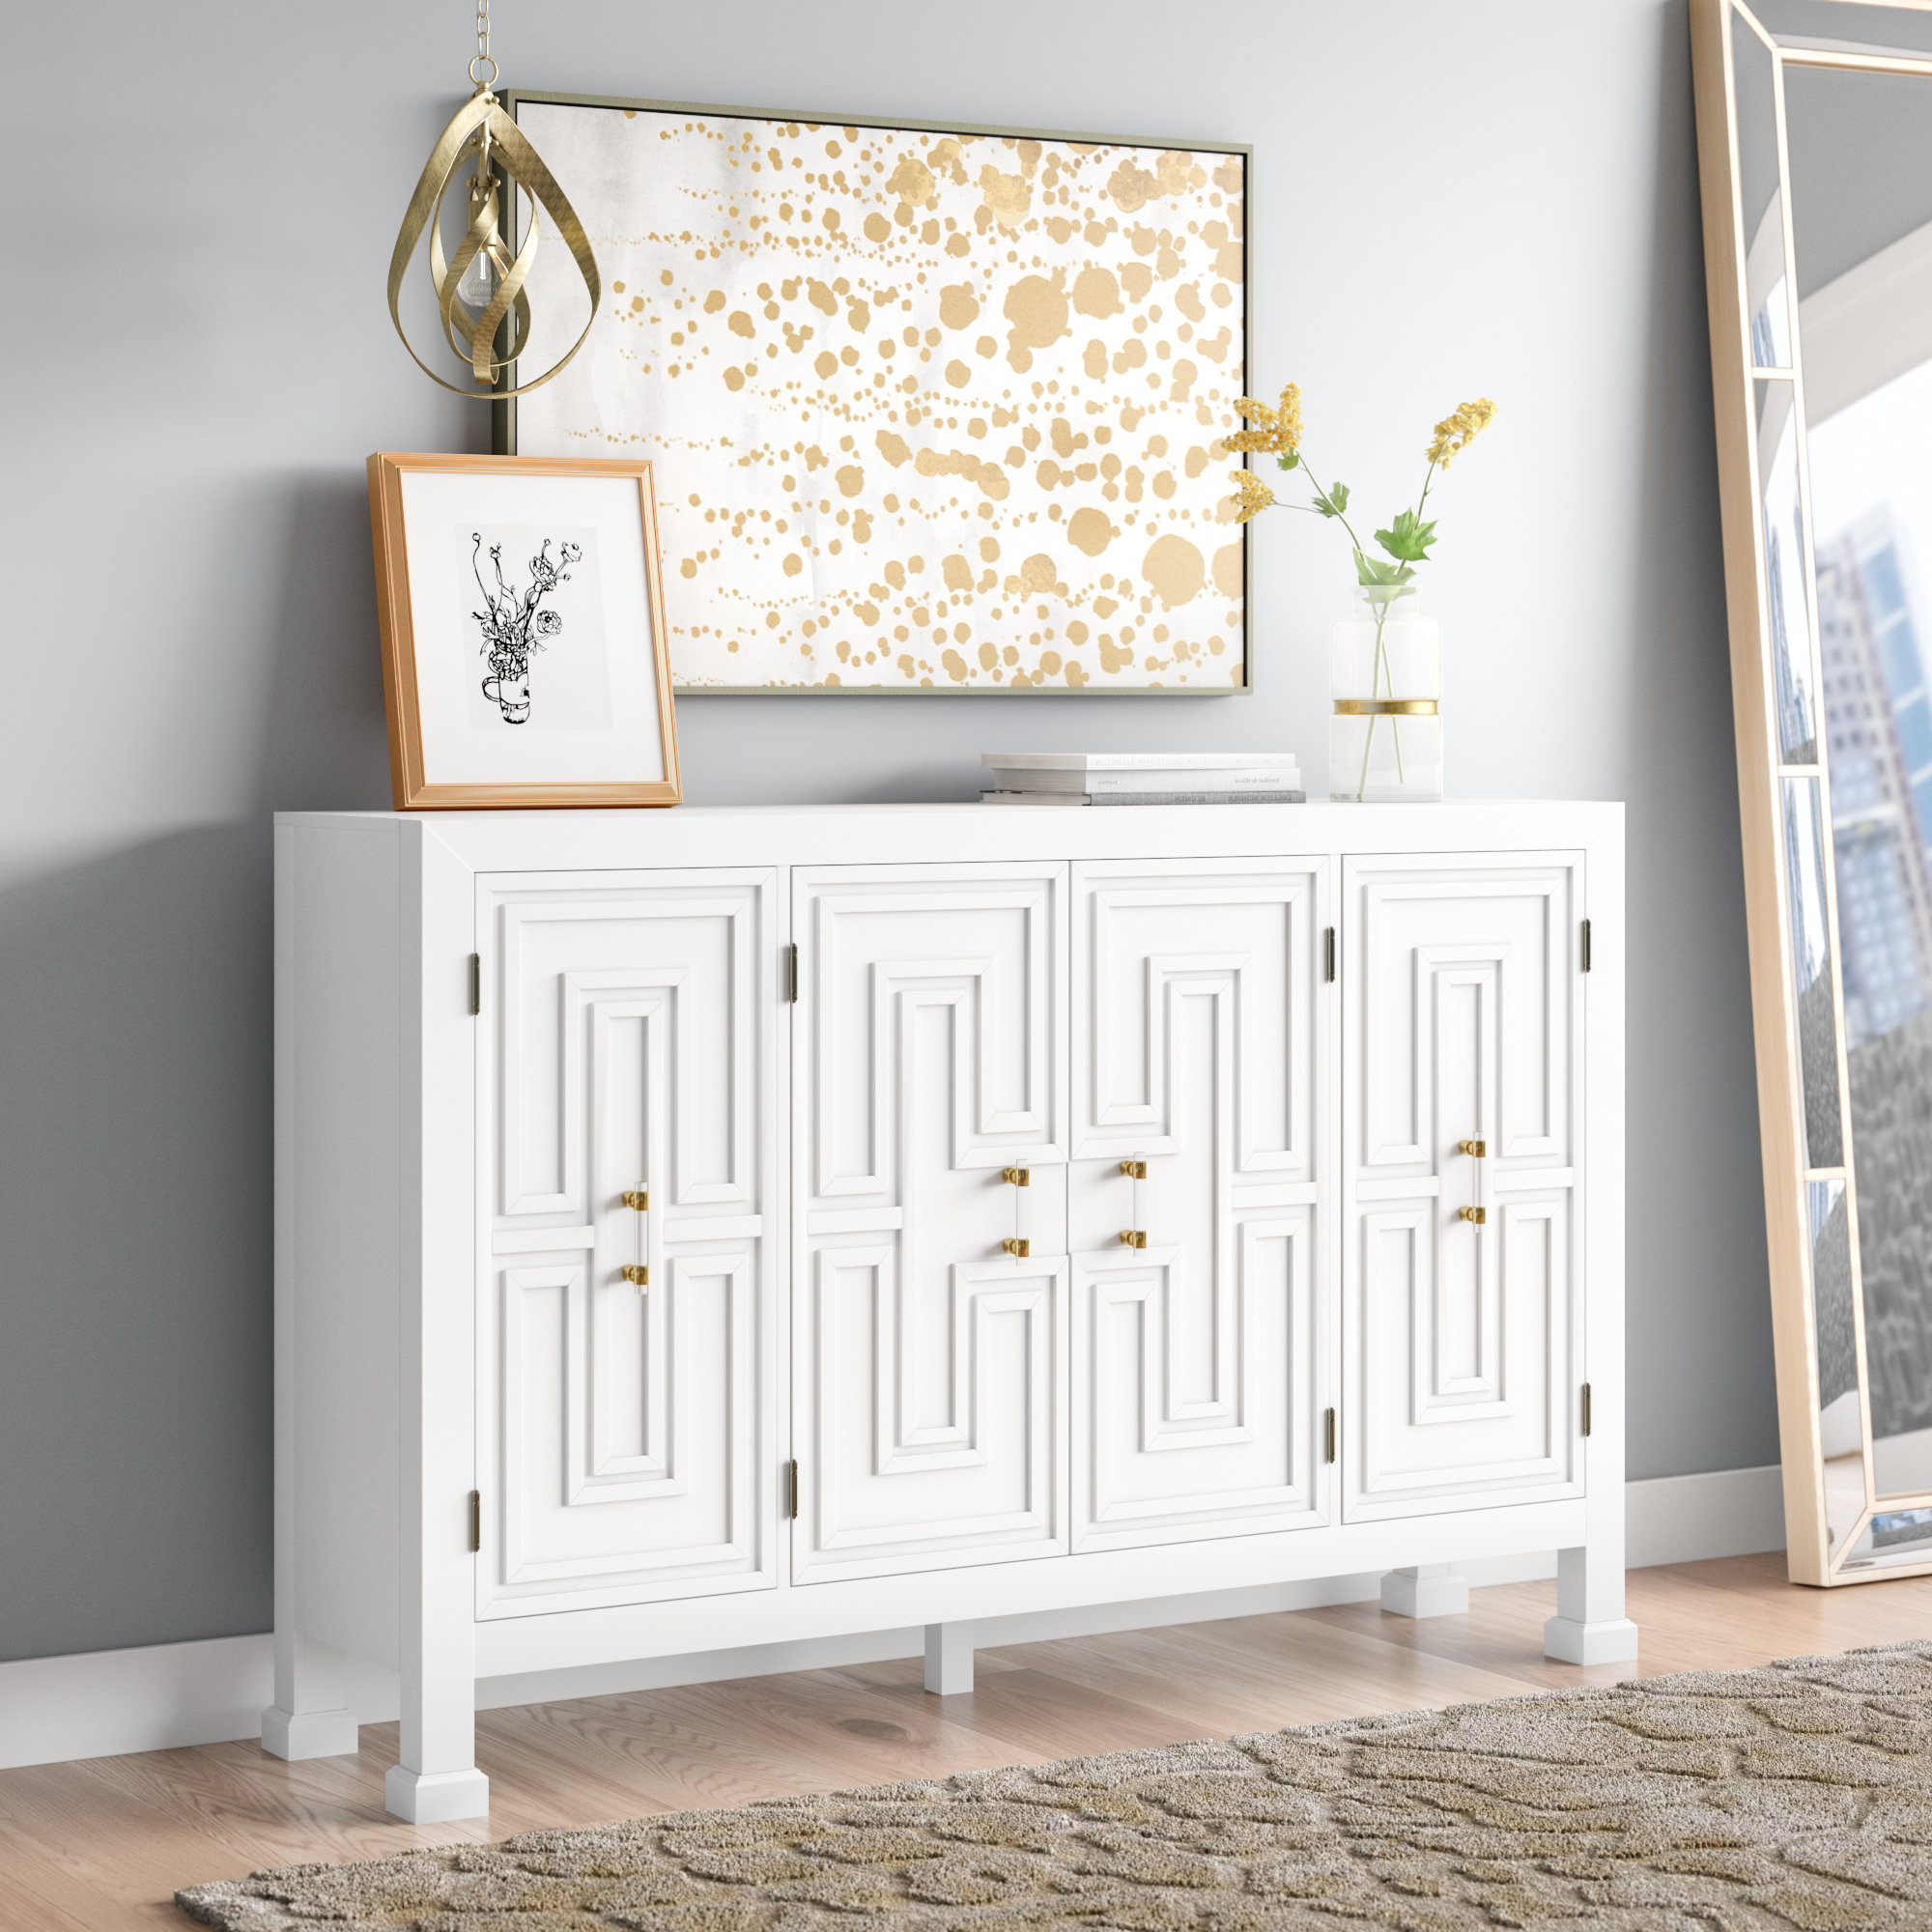 Lainey Credenzas Within Most Popular Lainey Credenza (Gallery 2 of 20)